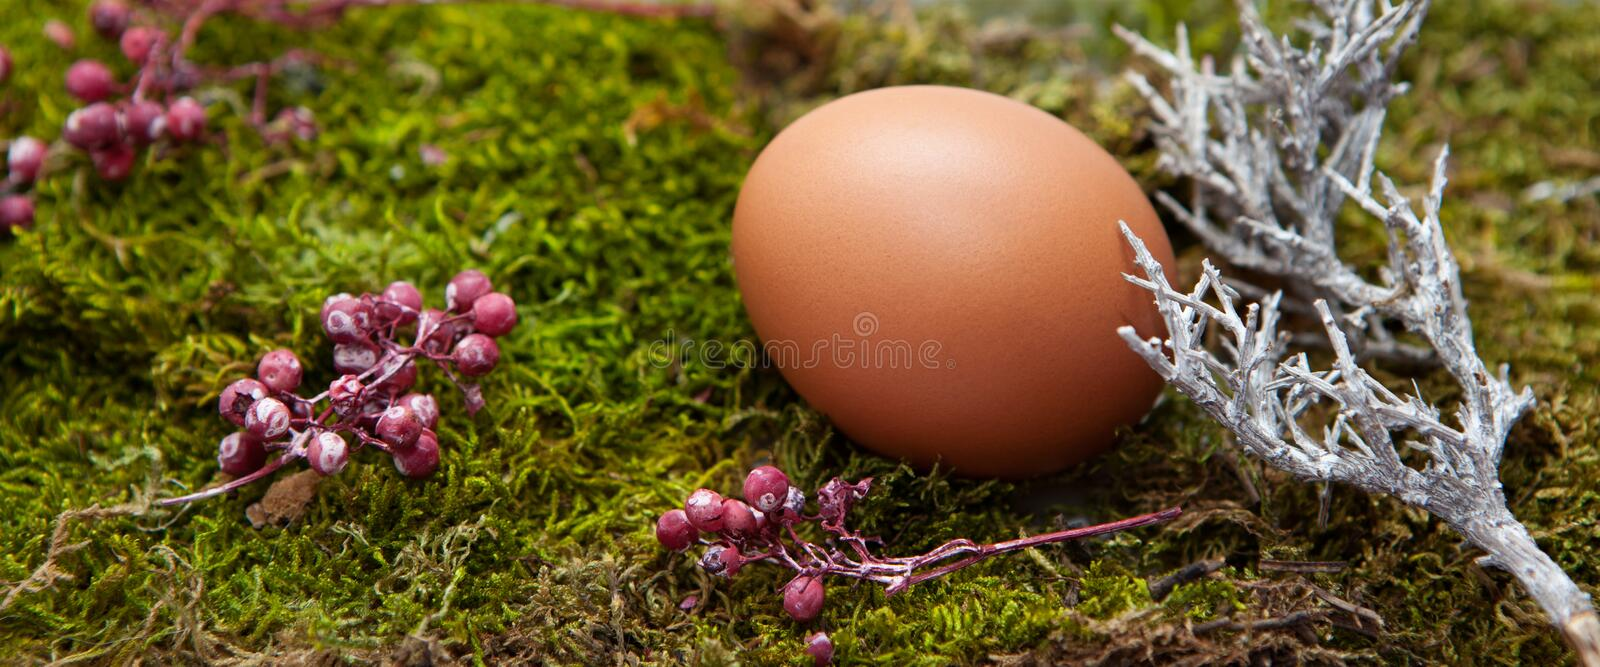 Long horizontal photo of Easter decoration: A natural egg on moss. royalty free stock images